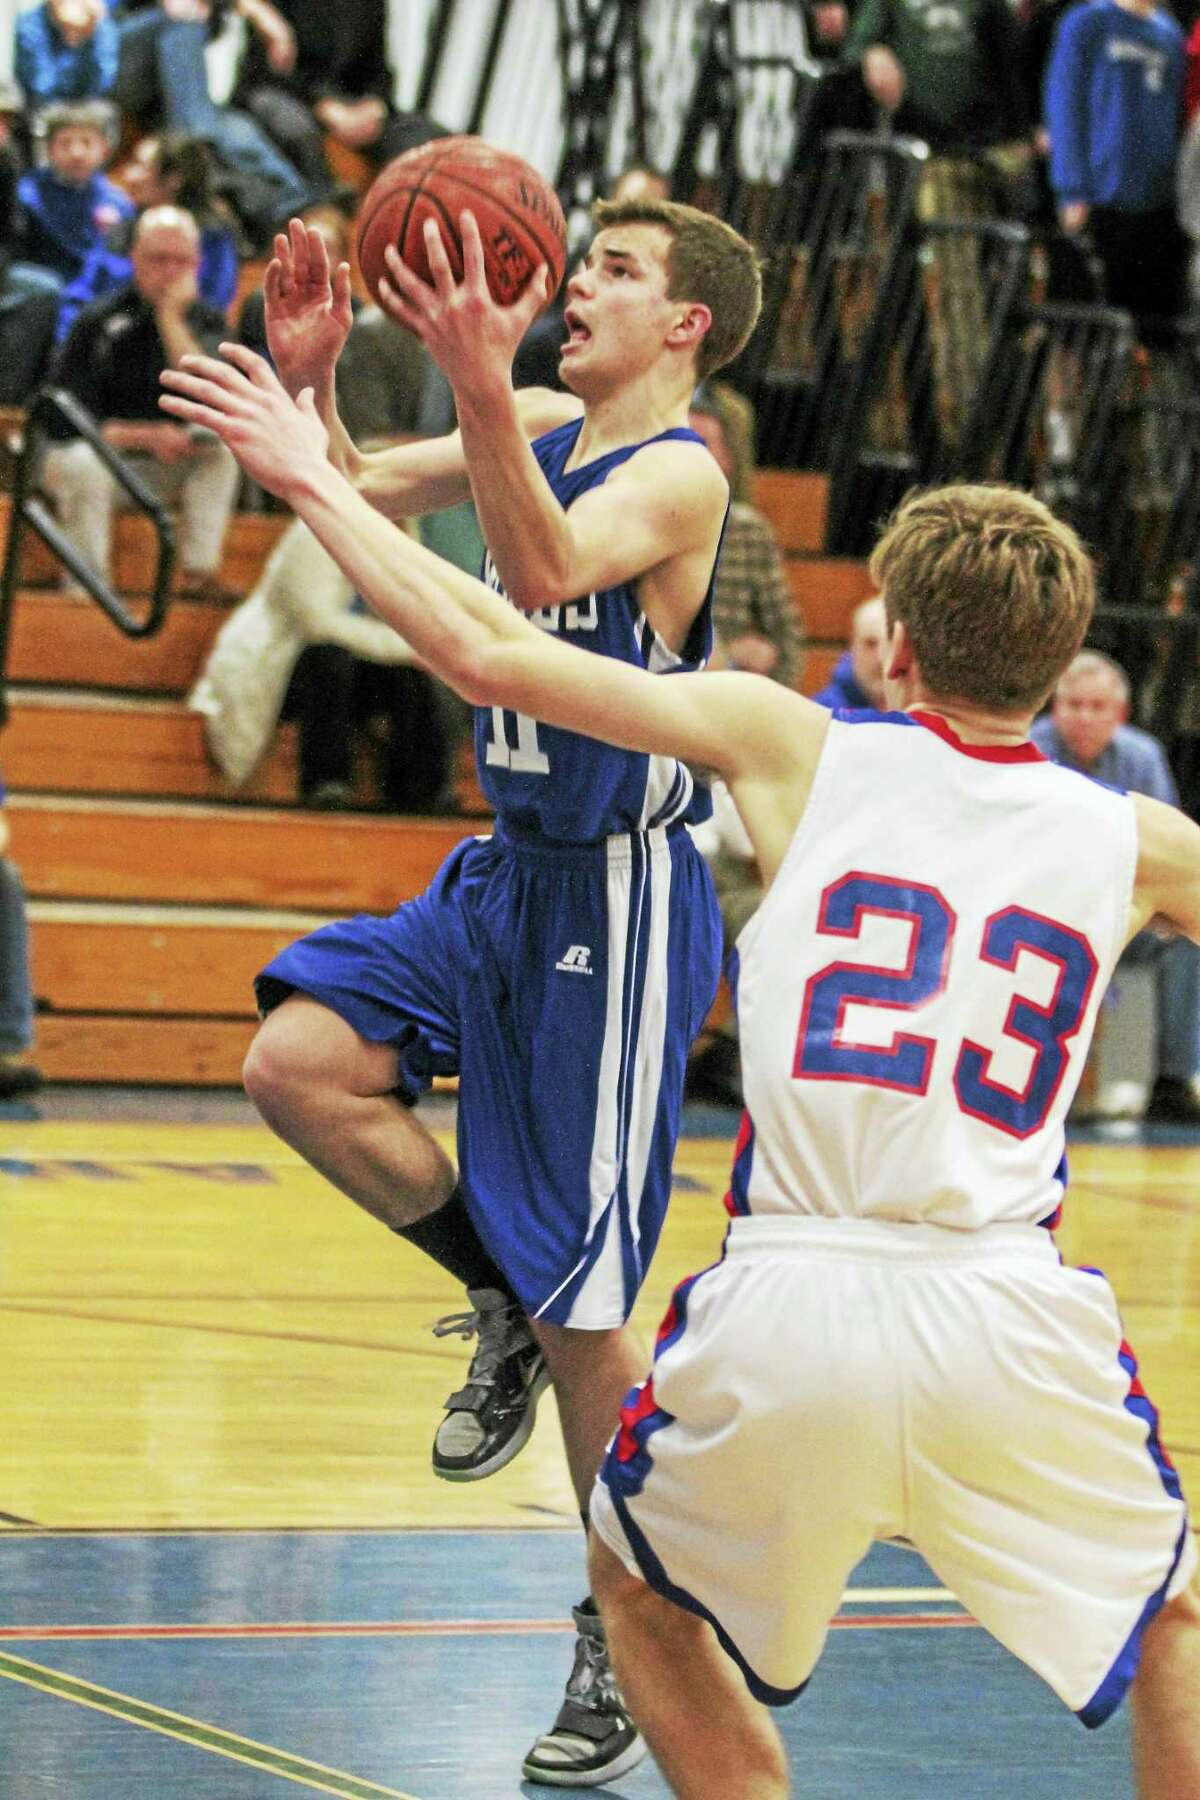 Nonnewaug's Jacob Matta (23) closes in on Lewis Mills' Lorenz Gunzl in a defensive battle for the Berkshire League Boys Basketball early semifinal at Lewis Mills Monday night.